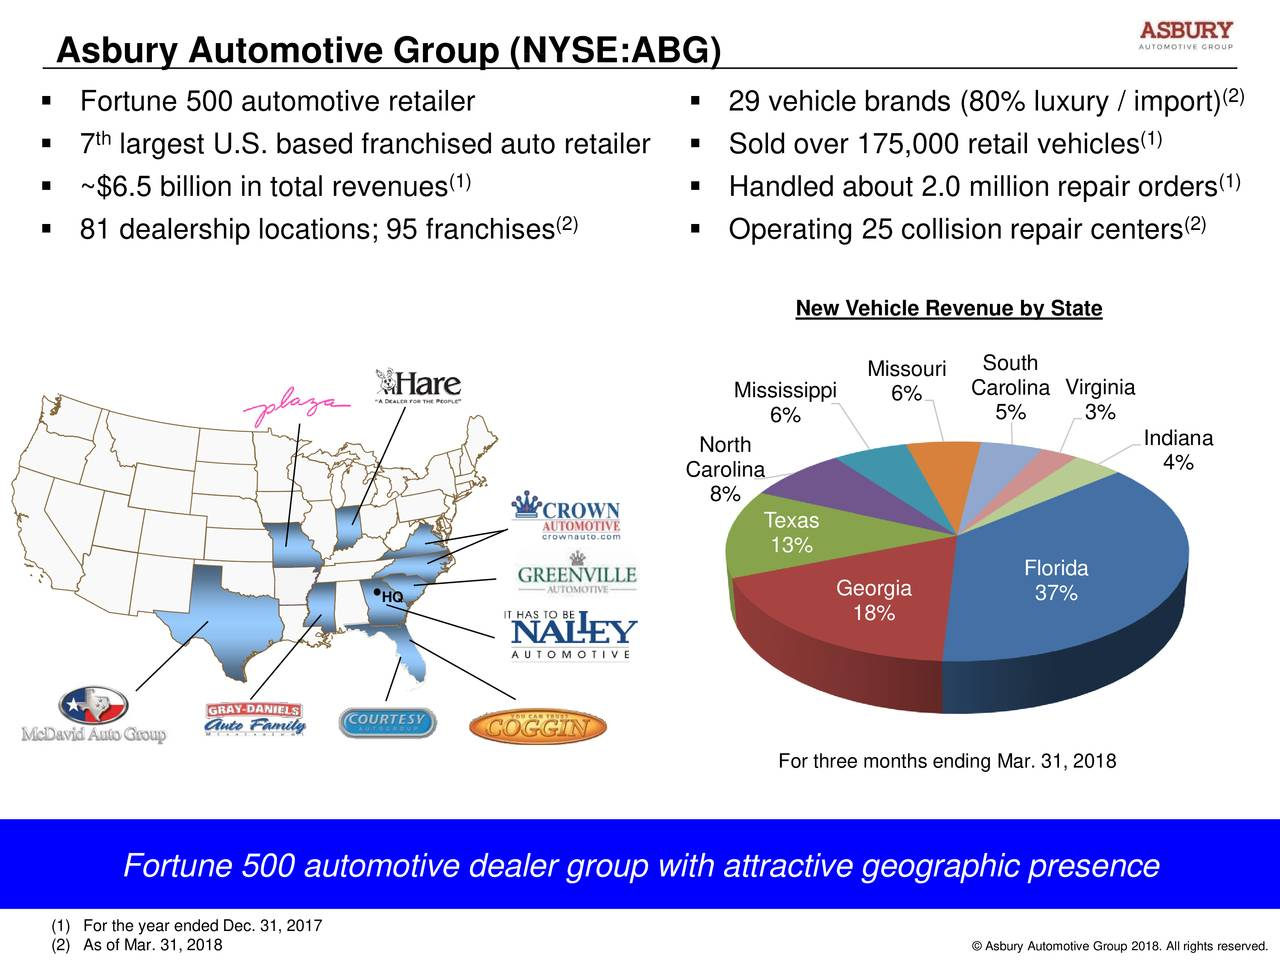  Fortune 500 automotive retailer  29 vehicle brands (80% luxury / import) (2) th (1)  7 largest U.S. based franchised auto retailer  Sold over 175,000 retail vehicles (1) (1)  ~$6.5 billion in total revenues  Handled about 2.0 million repair orders (2) (2)  81 dealership locations; 95 franchises  Operating 25 collision repair centers New Vehicle Revenue by State Missouri South Mississippi 6% Carolina Virginia 6% 5% 3% North Indiana Carolina 4% 8% Texas 13% Florida •HQ Georgia 37% 18% For three months ending Mar. 31, 2018 Fortune 500 automotive dealer group with attractive geographic presence (1) For the year ended Dec. 31, 2017